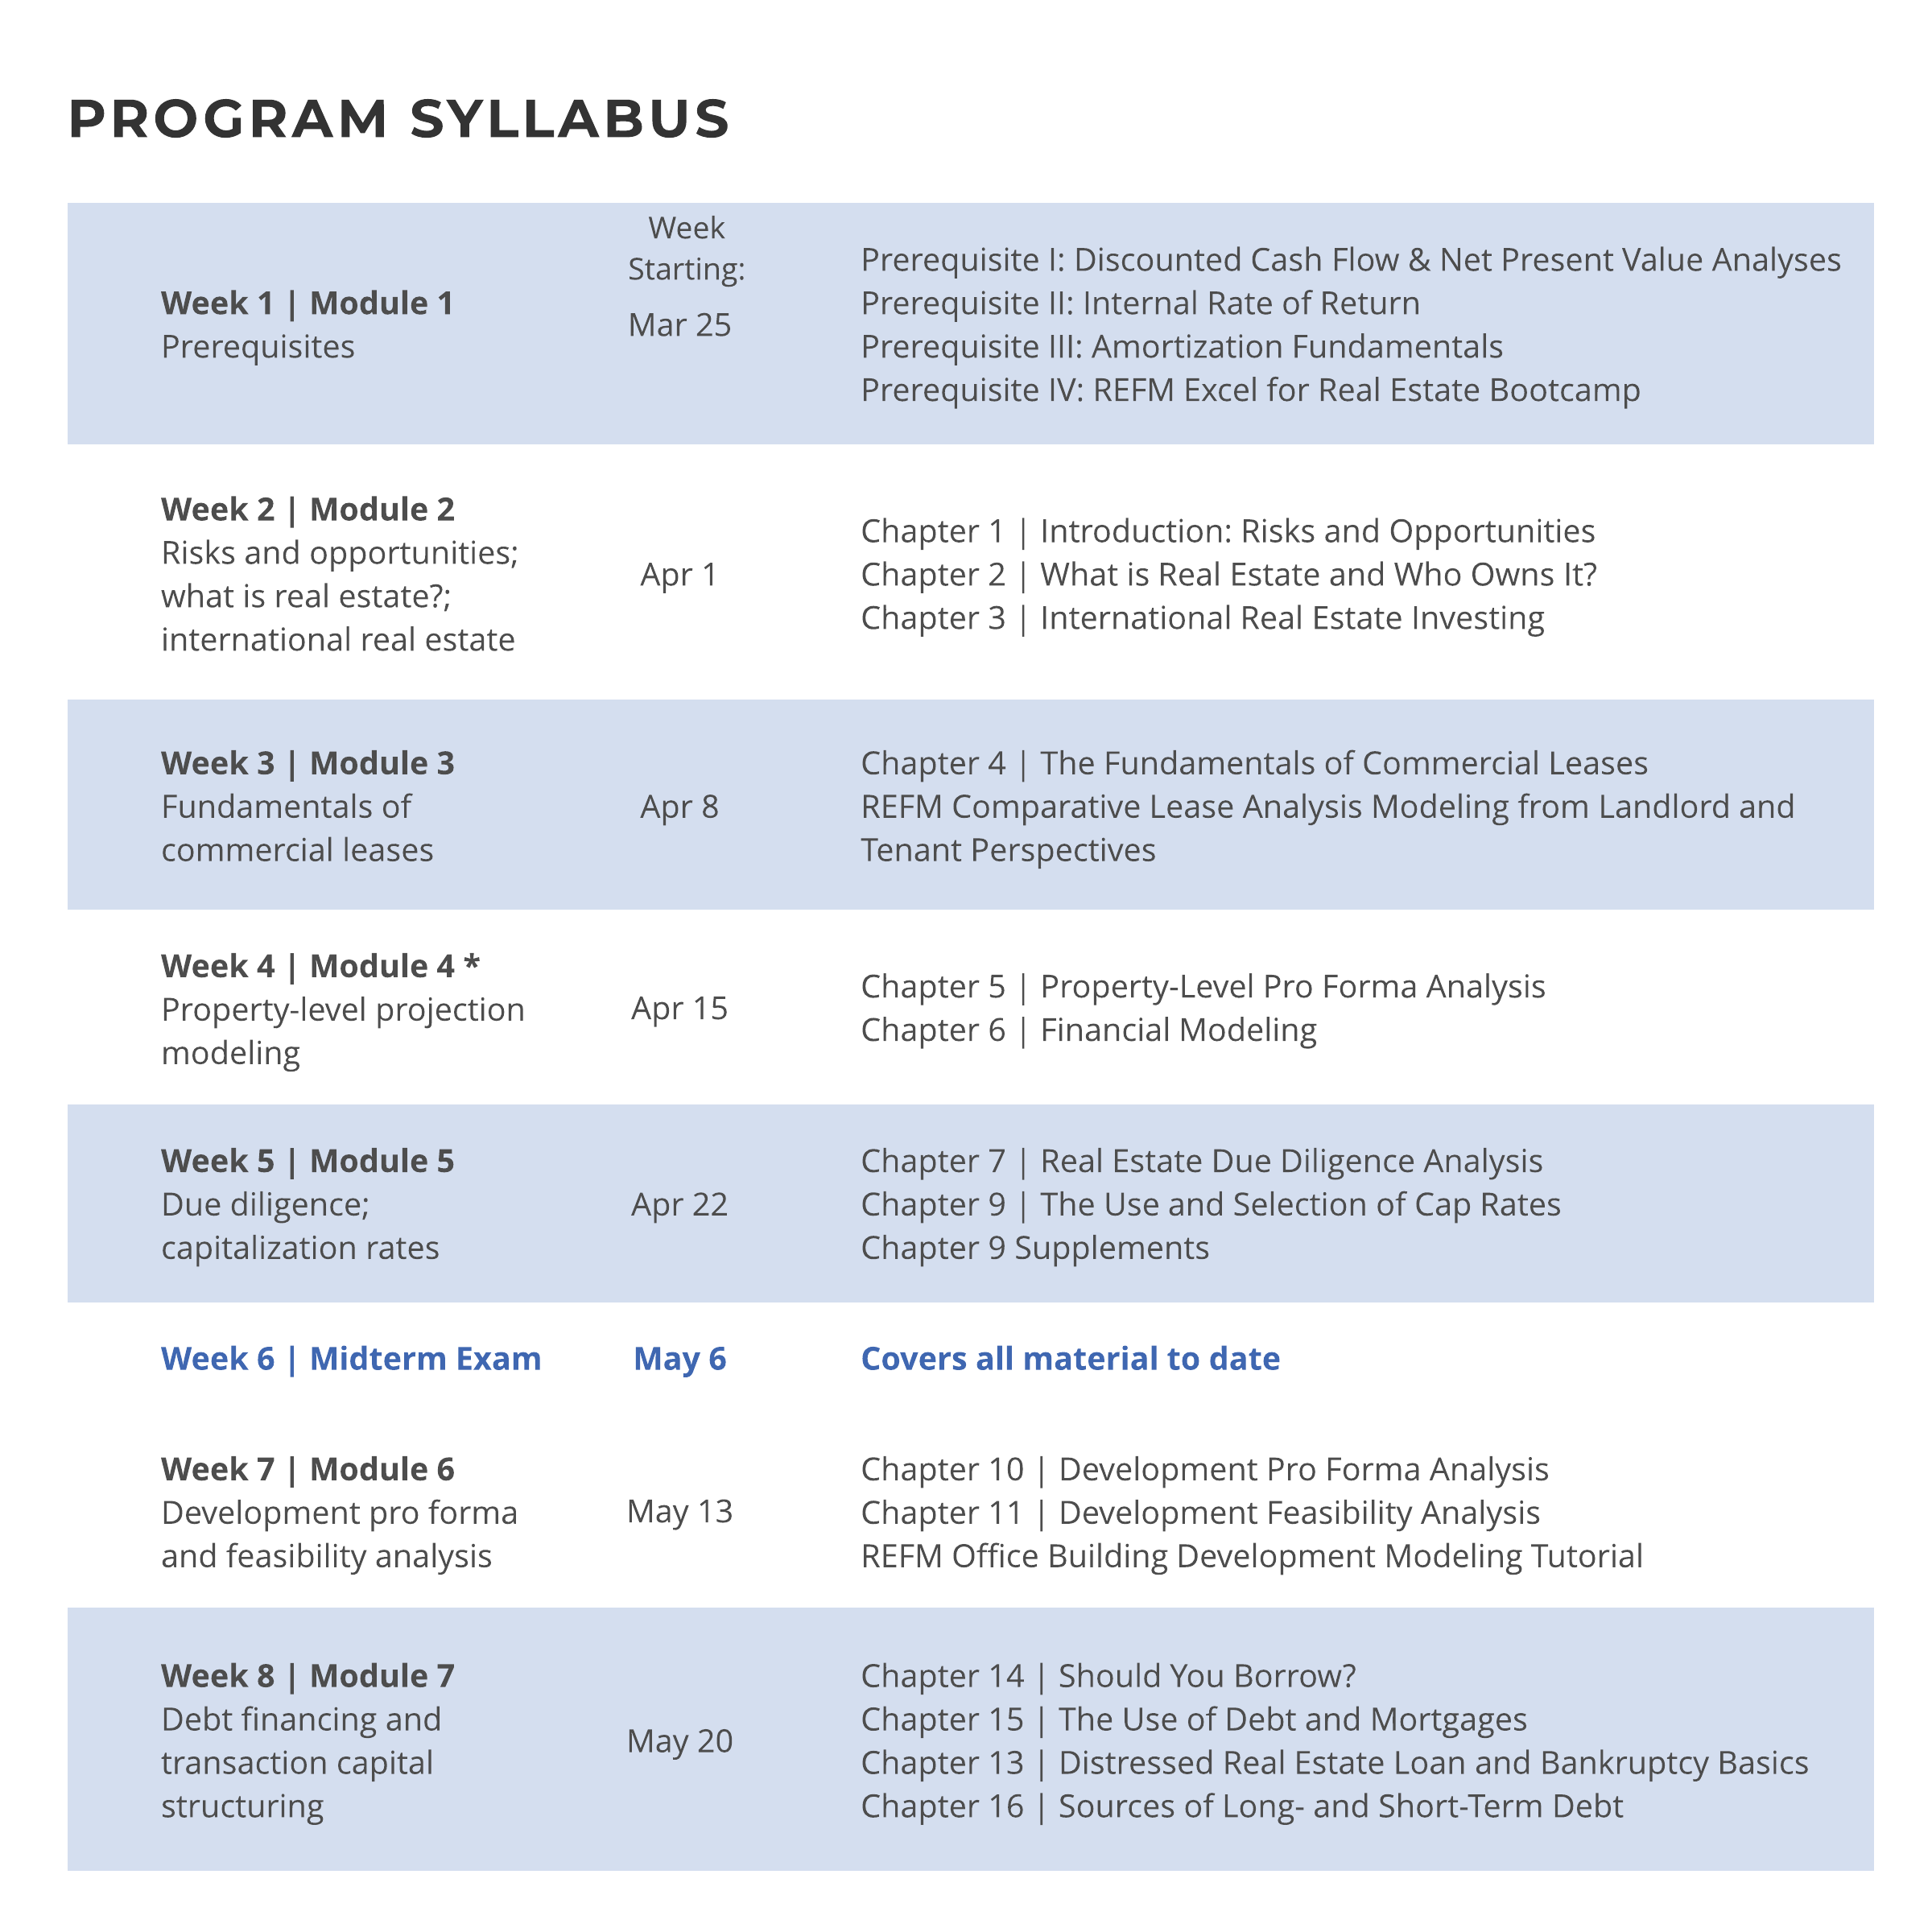 REFAI Program Syllabus